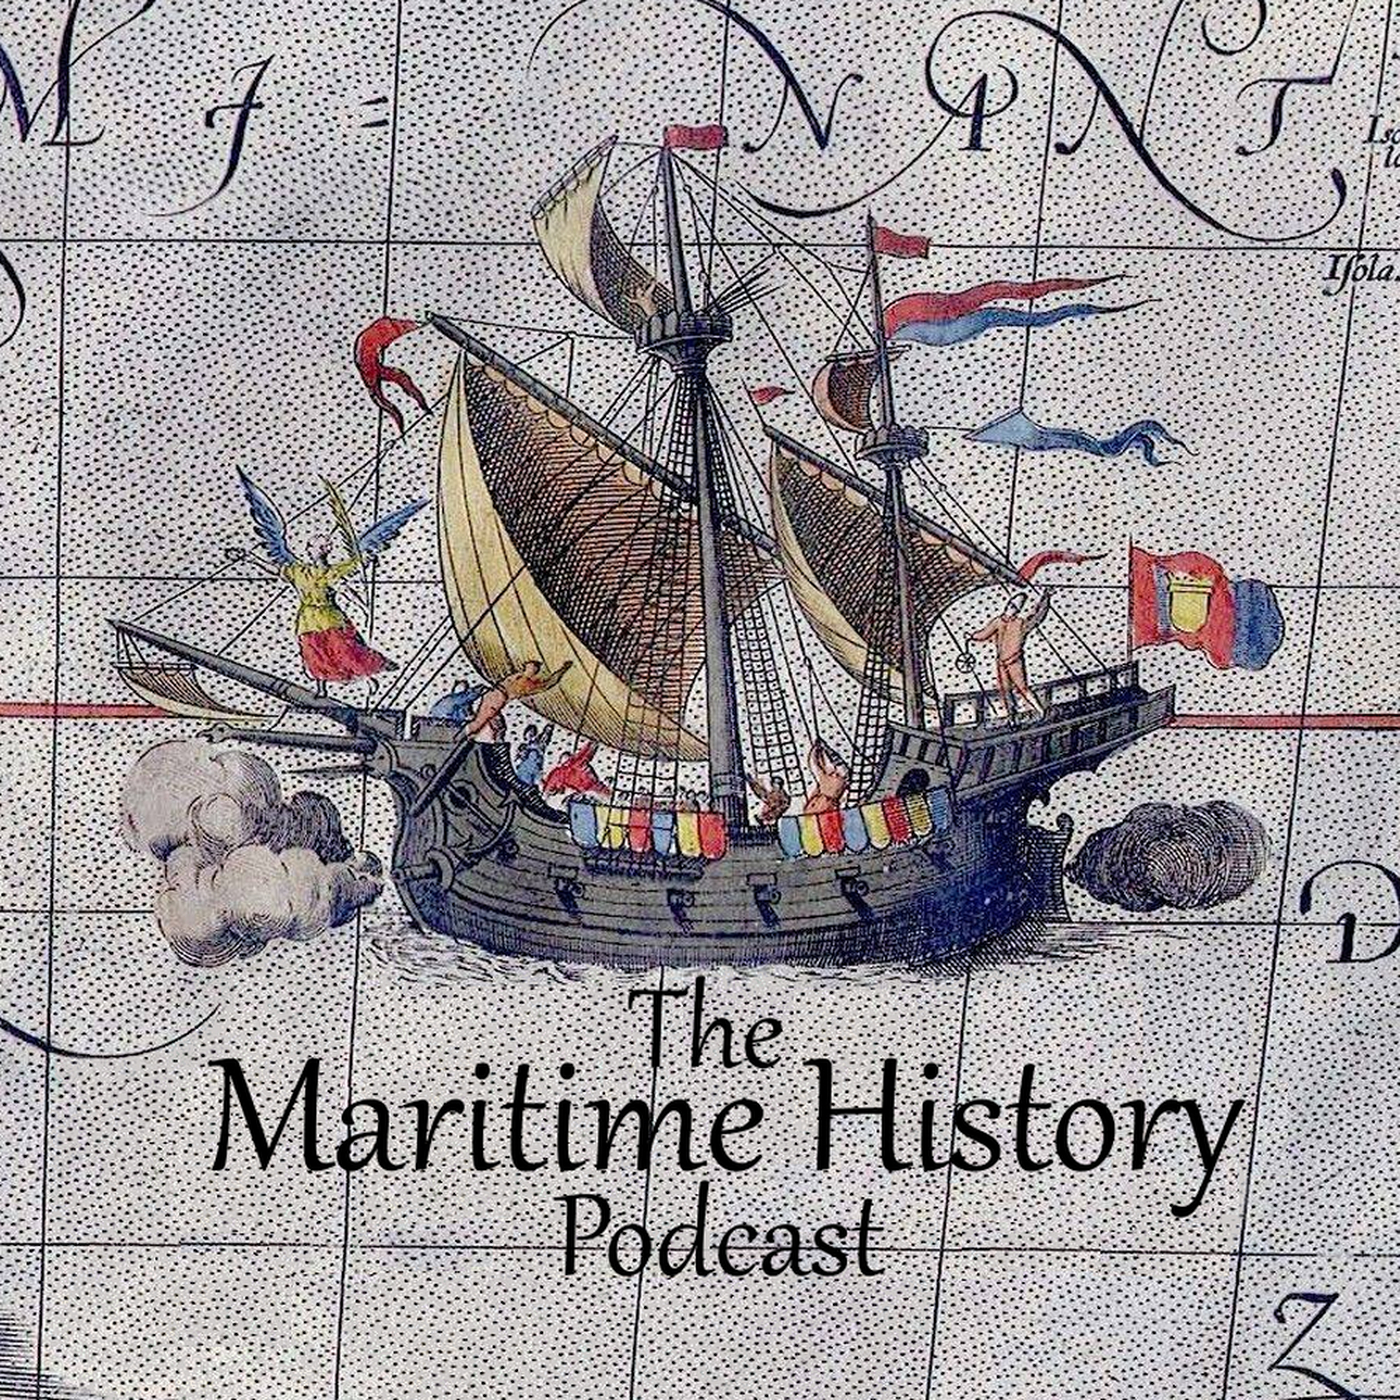 036 - The Naval Battle of Artemisium - Part I